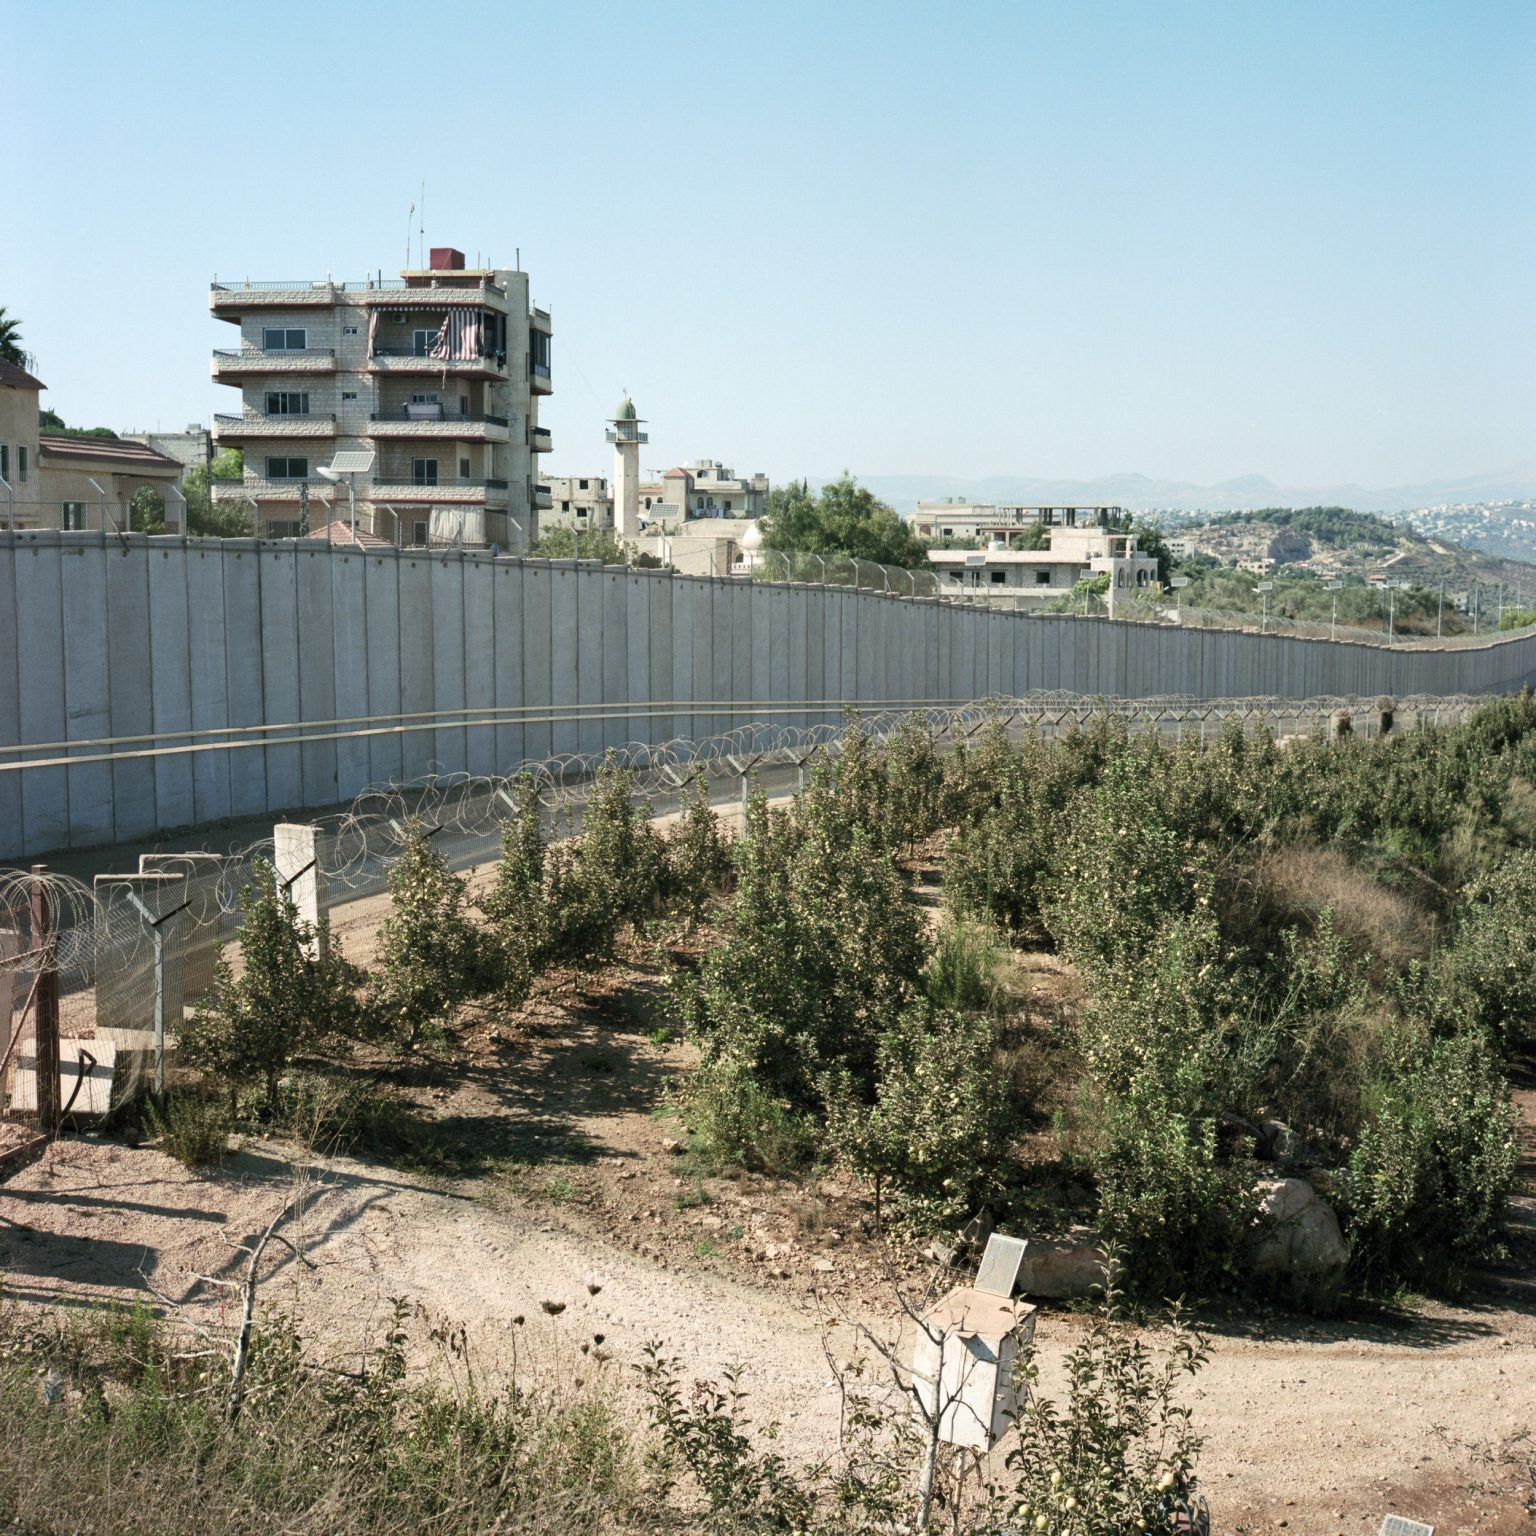 Metulla. Israel. The view from a military position of the town of Kfar Kila and the wall built along the border. The seven-meter high wall, the first of this kind along the border with Lebanon, was completed in june 2012 and it runs 1,200 meters long. It is meant to protect residents of the town from possible sniper fire or rocket attacks coming from the lebanese village of Kfar Kila, just a few meters across the border.